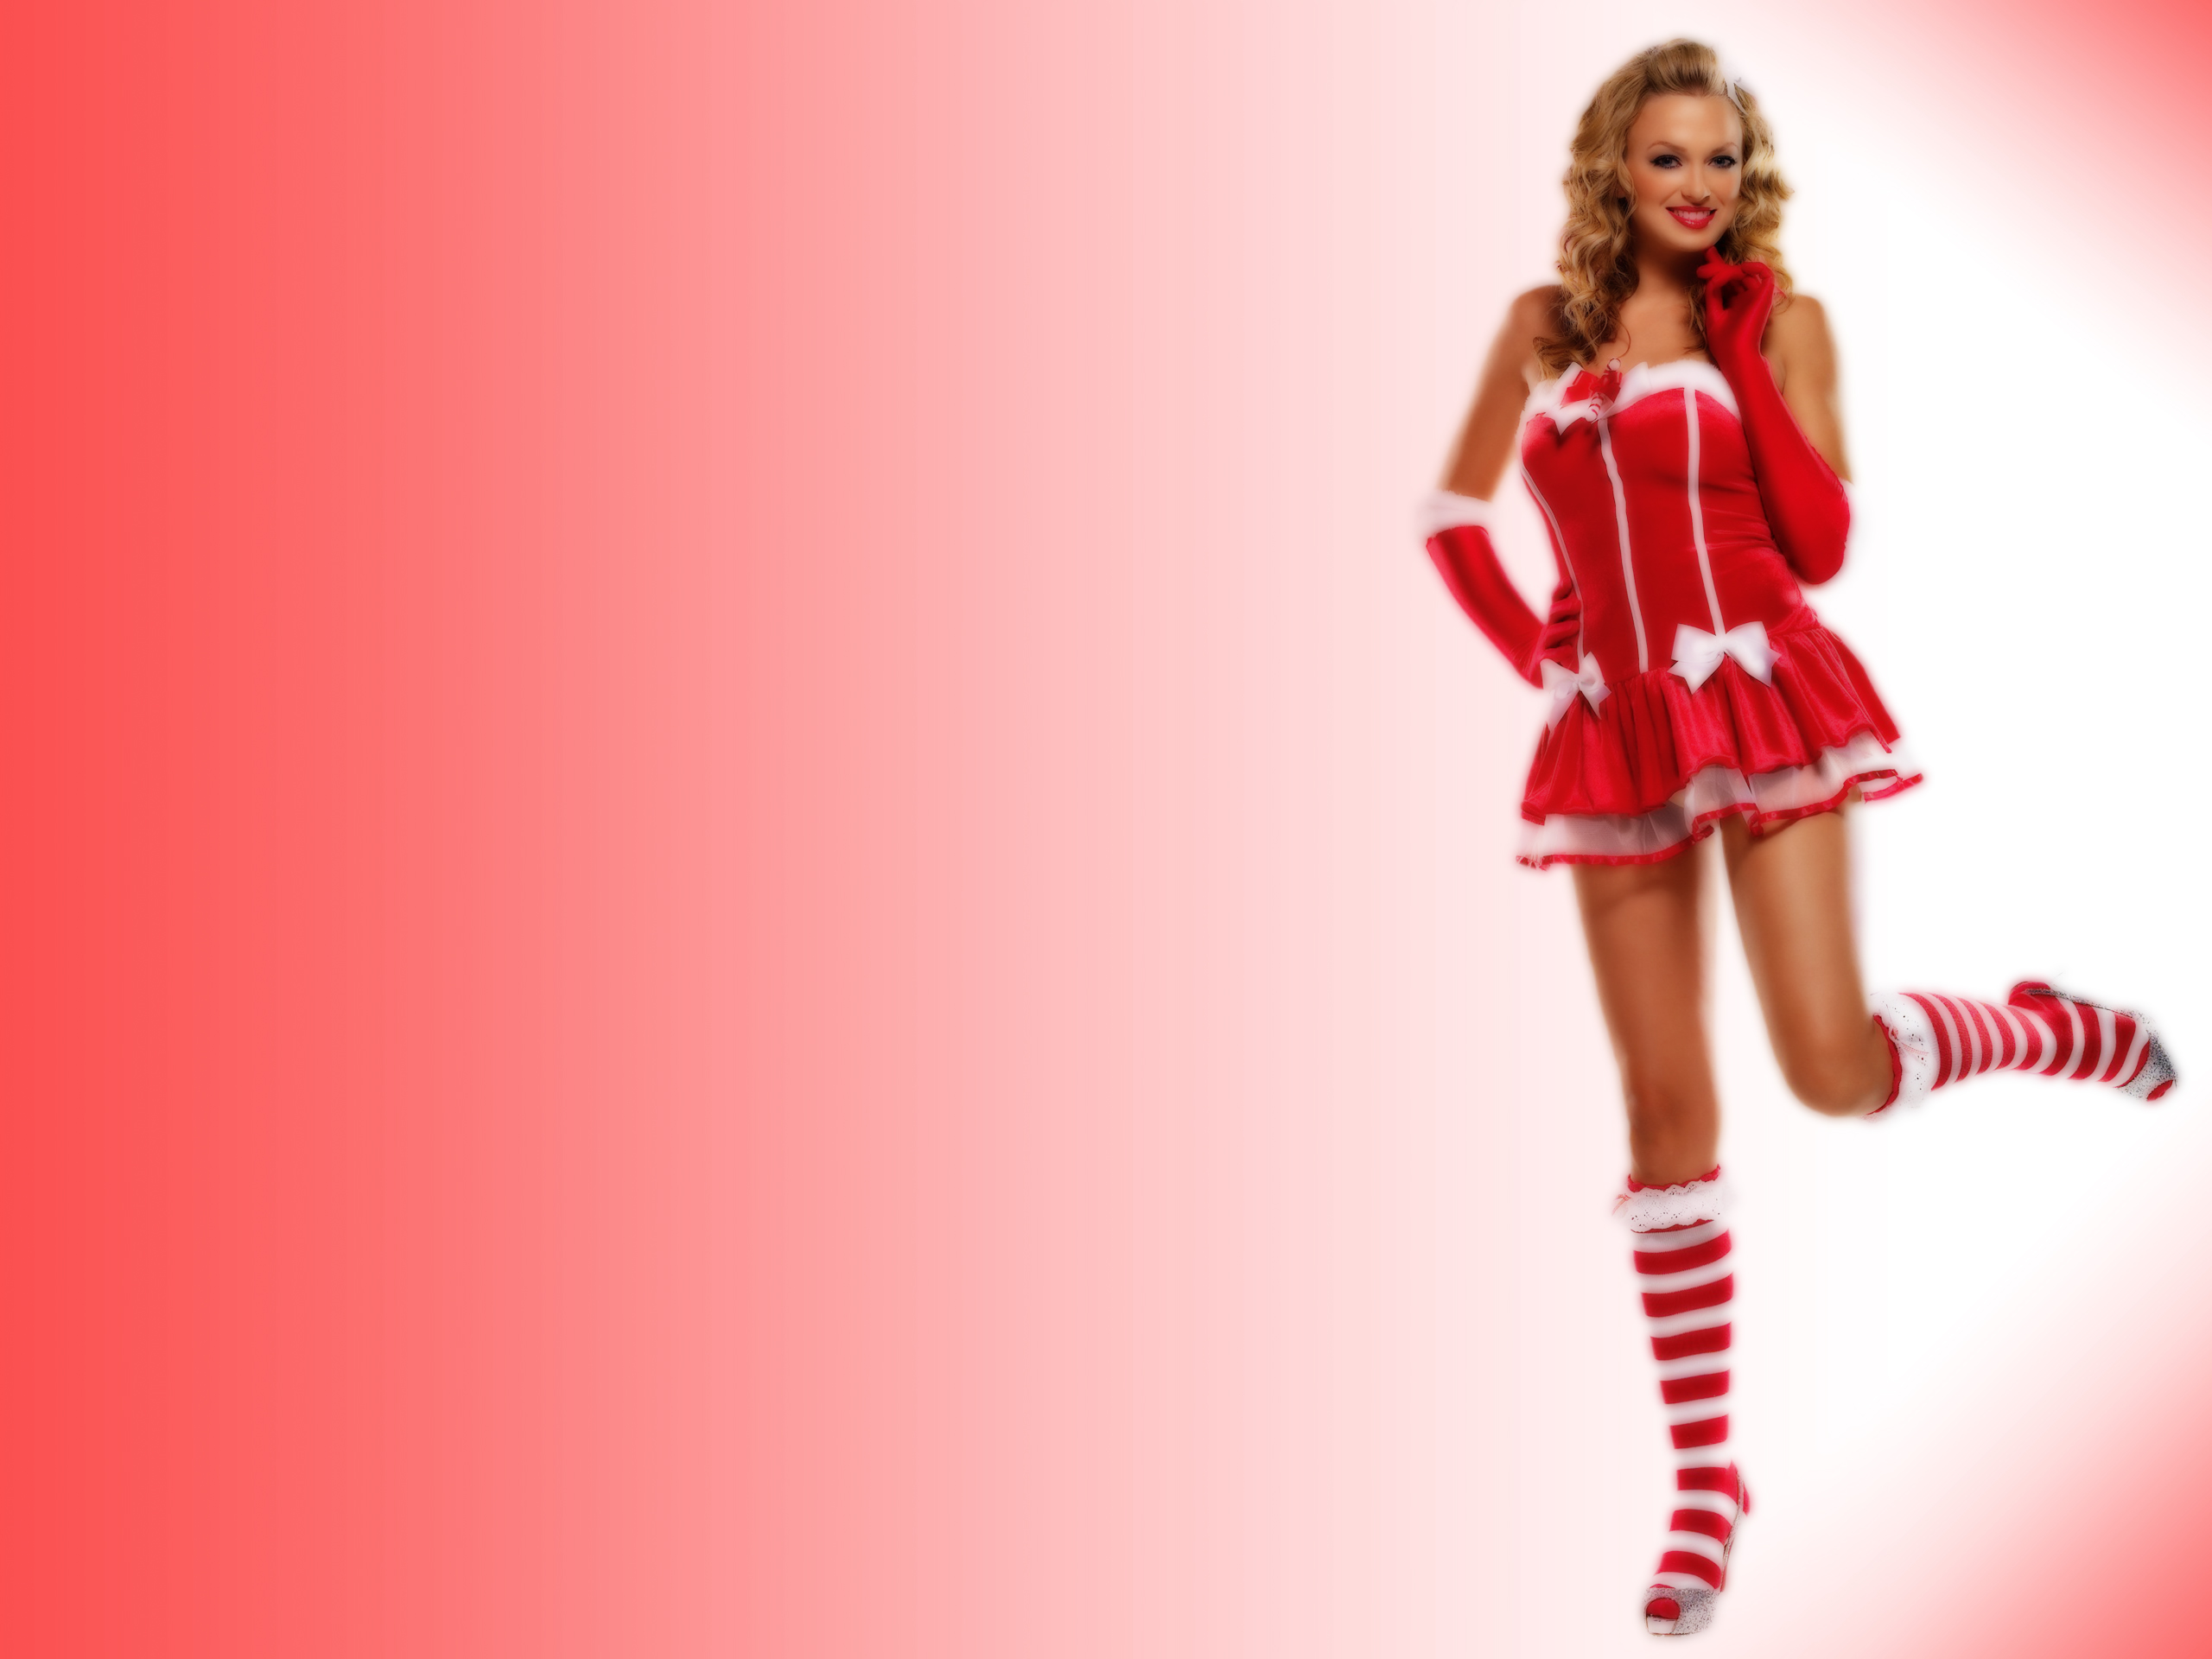 Photo Collection Santa Babe Wallpapers